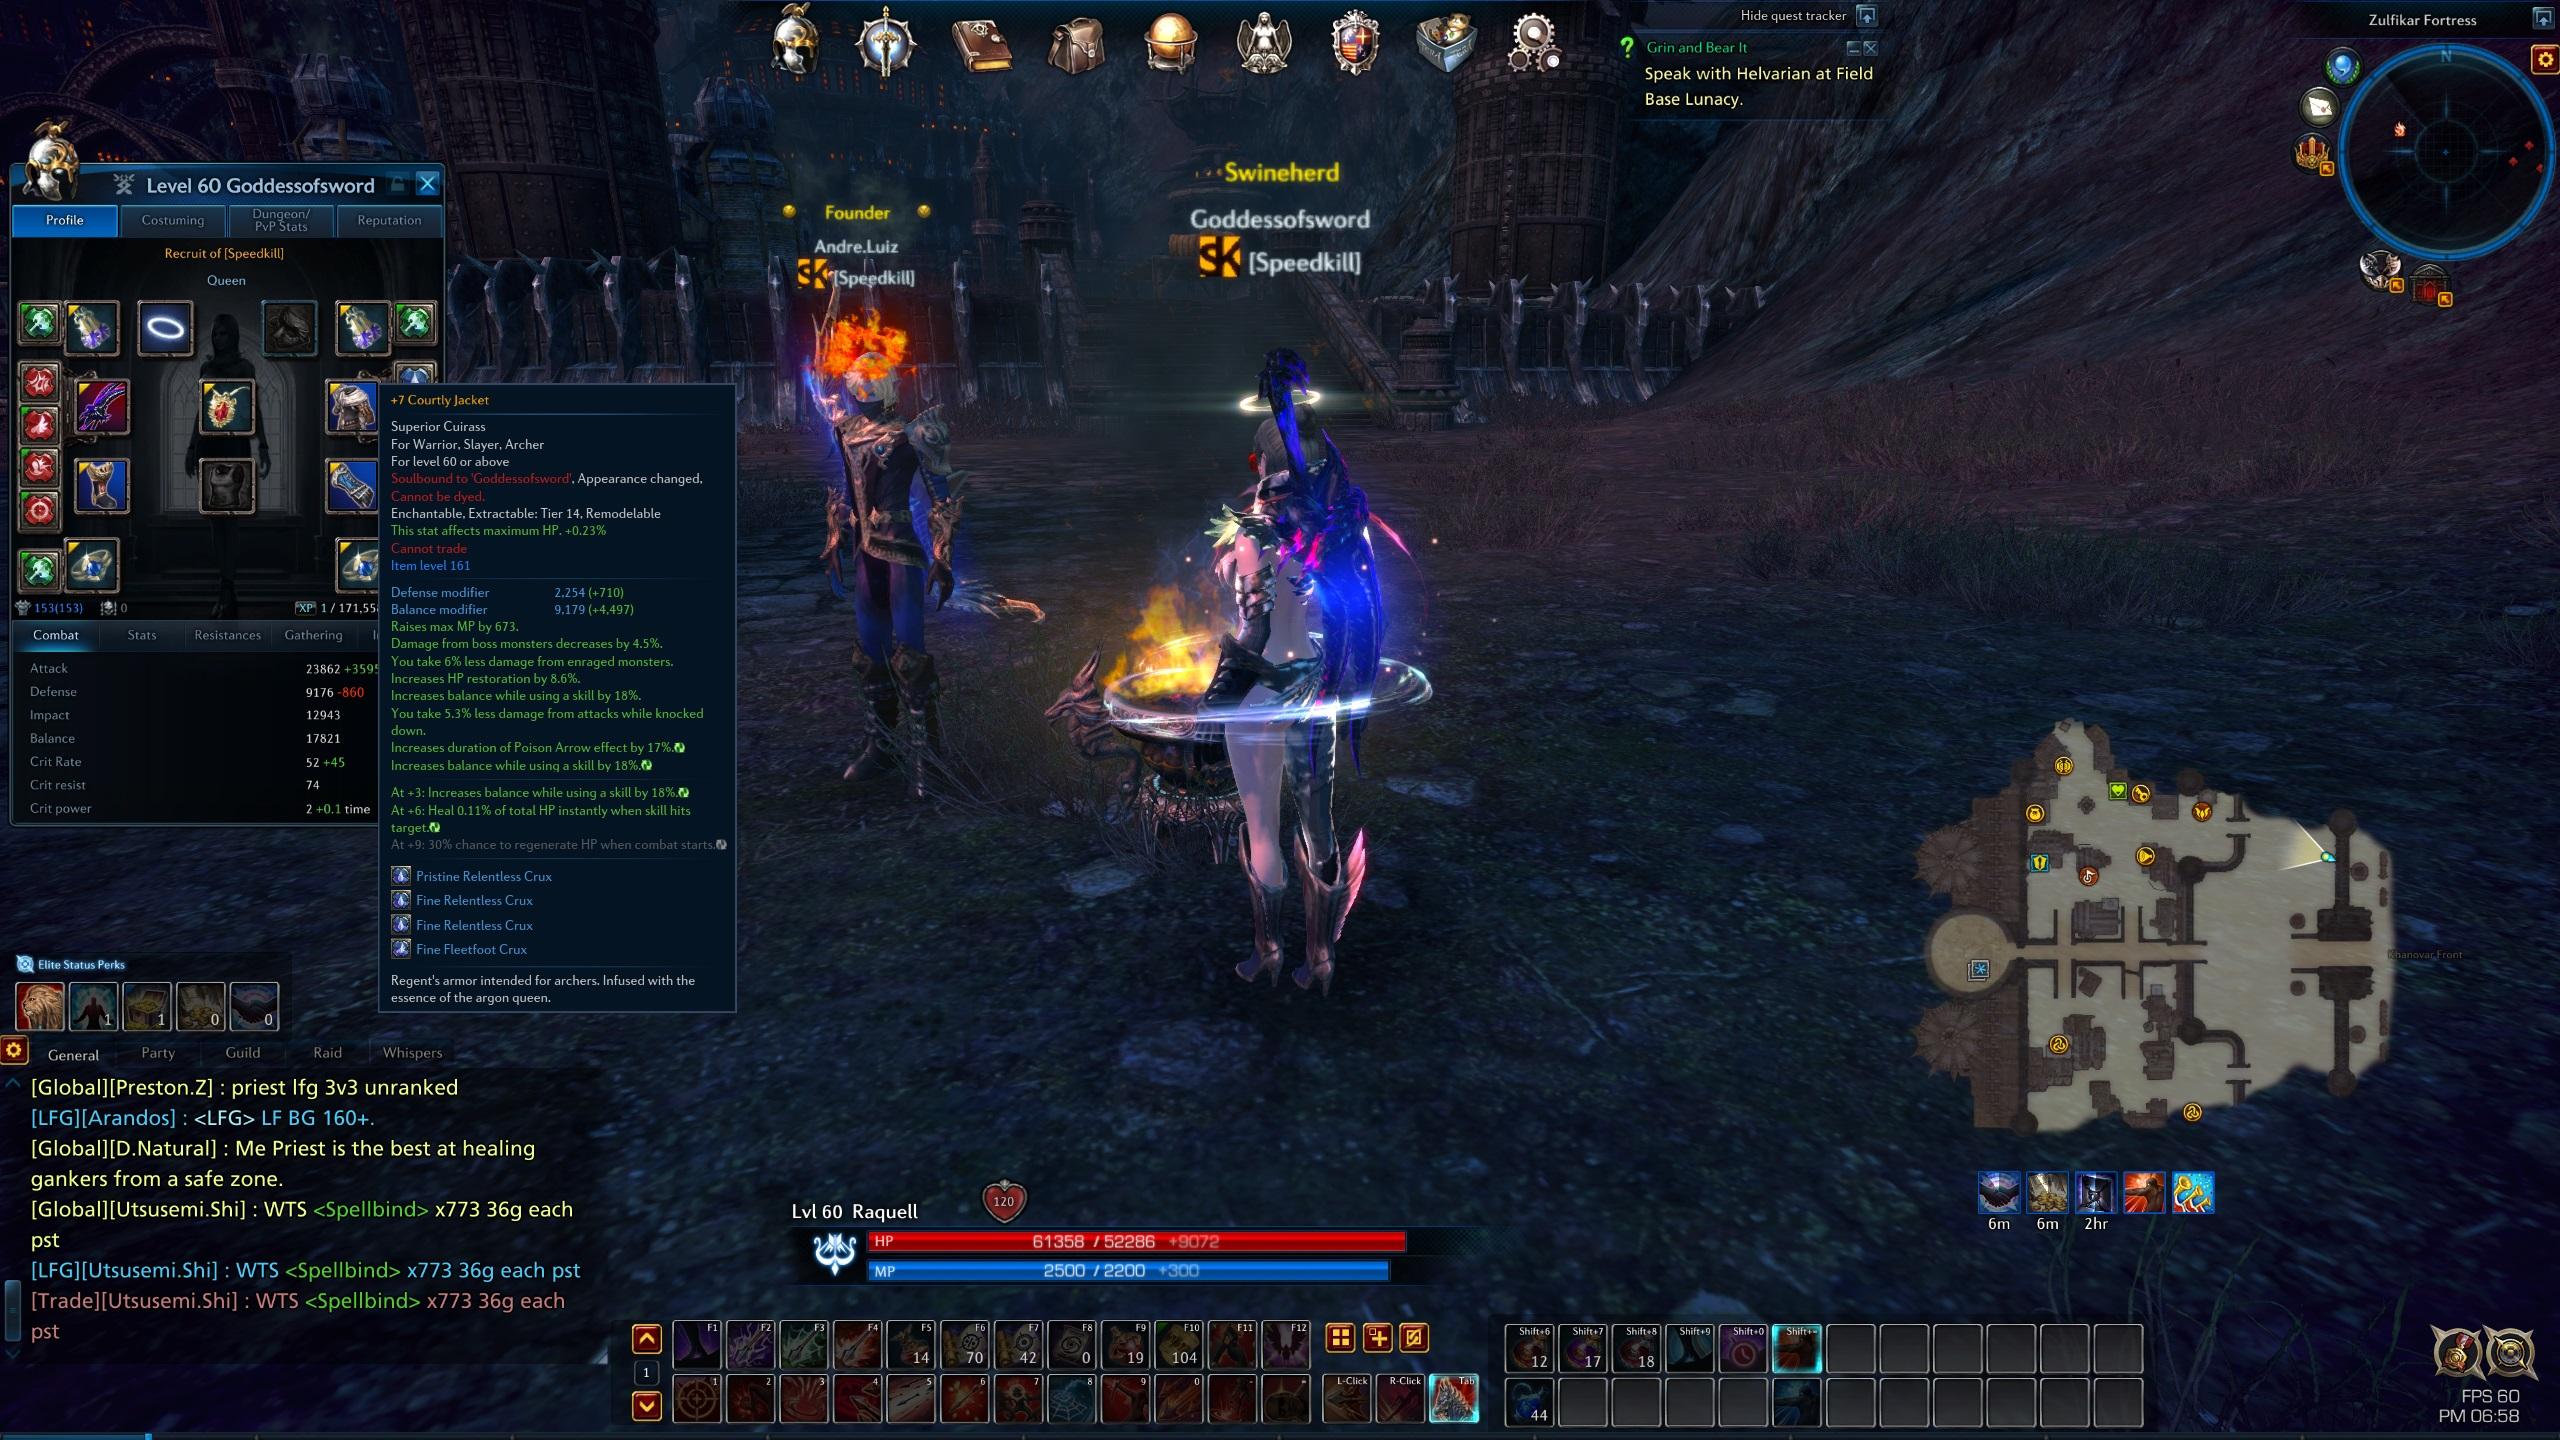 eddard games opening gameplay trailer experience preview online media removed heres tera